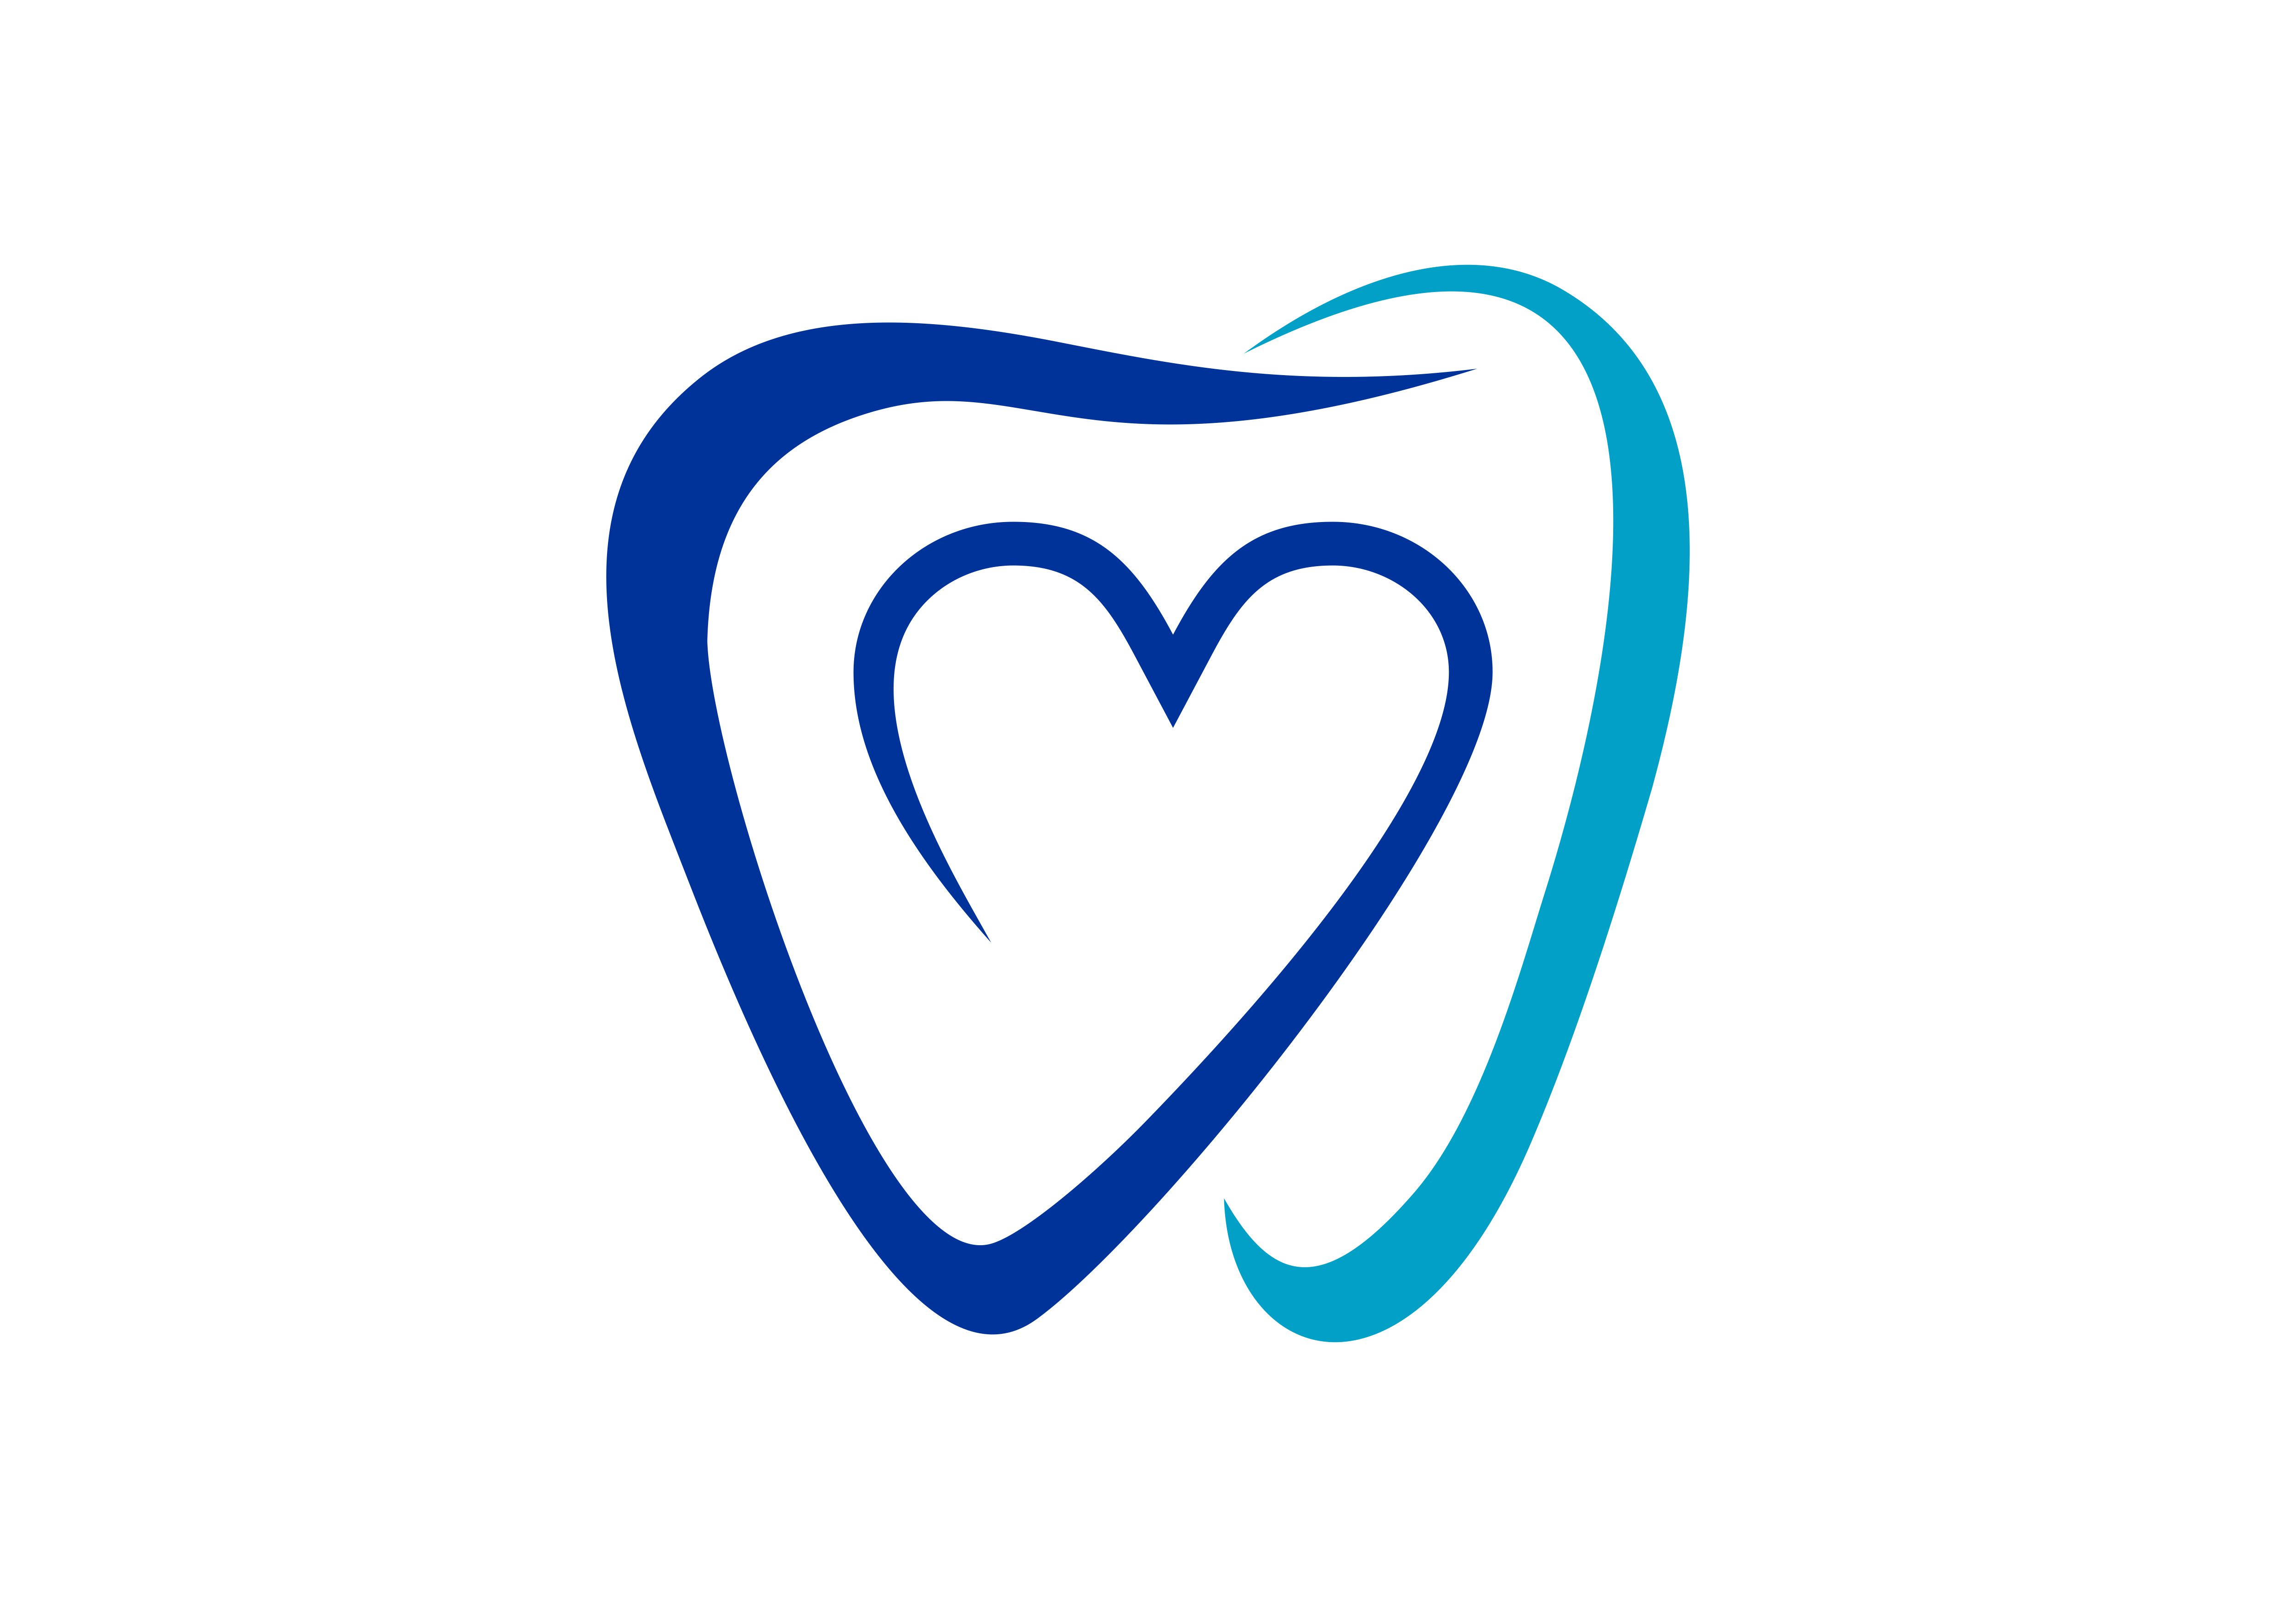 Download Free Dental Tooth Dentist Love Logo Graphic By Deemka Studio for Cricut Explore, Silhouette and other cutting machines.